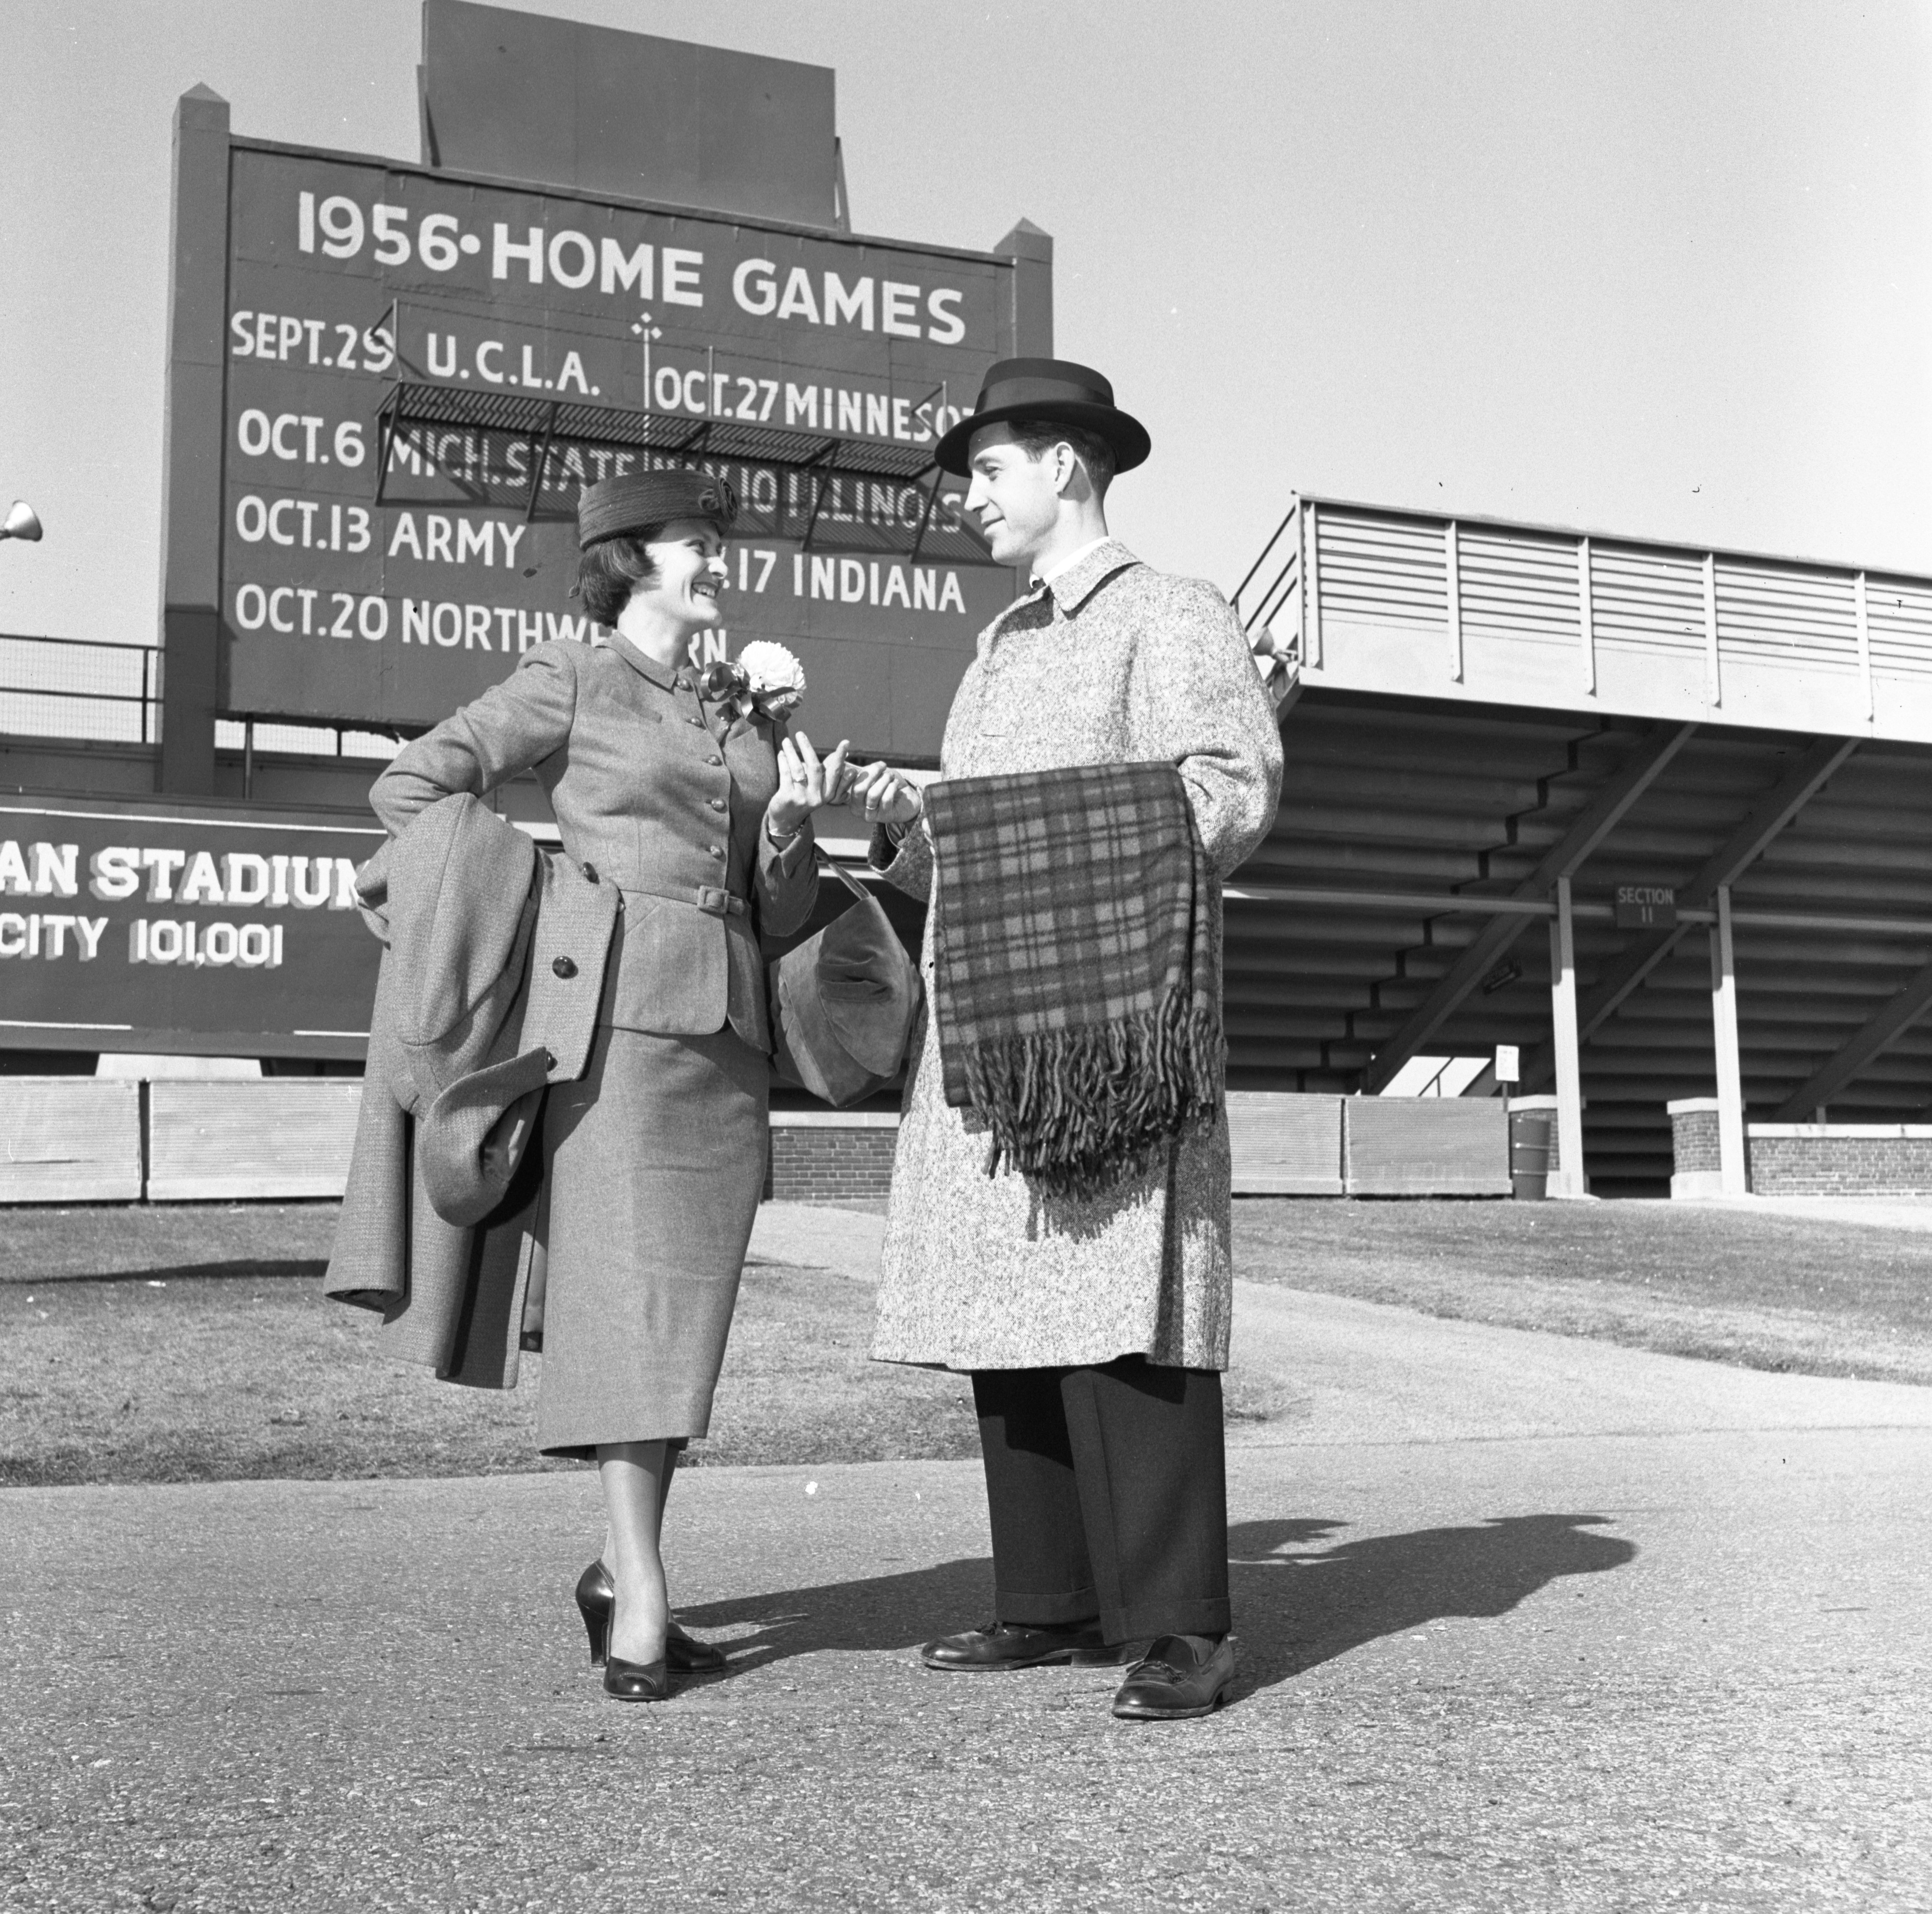 Robert Lemmon & Edith Dale Model Fall Fashions Outside Michigan Stadium, October 1956 image